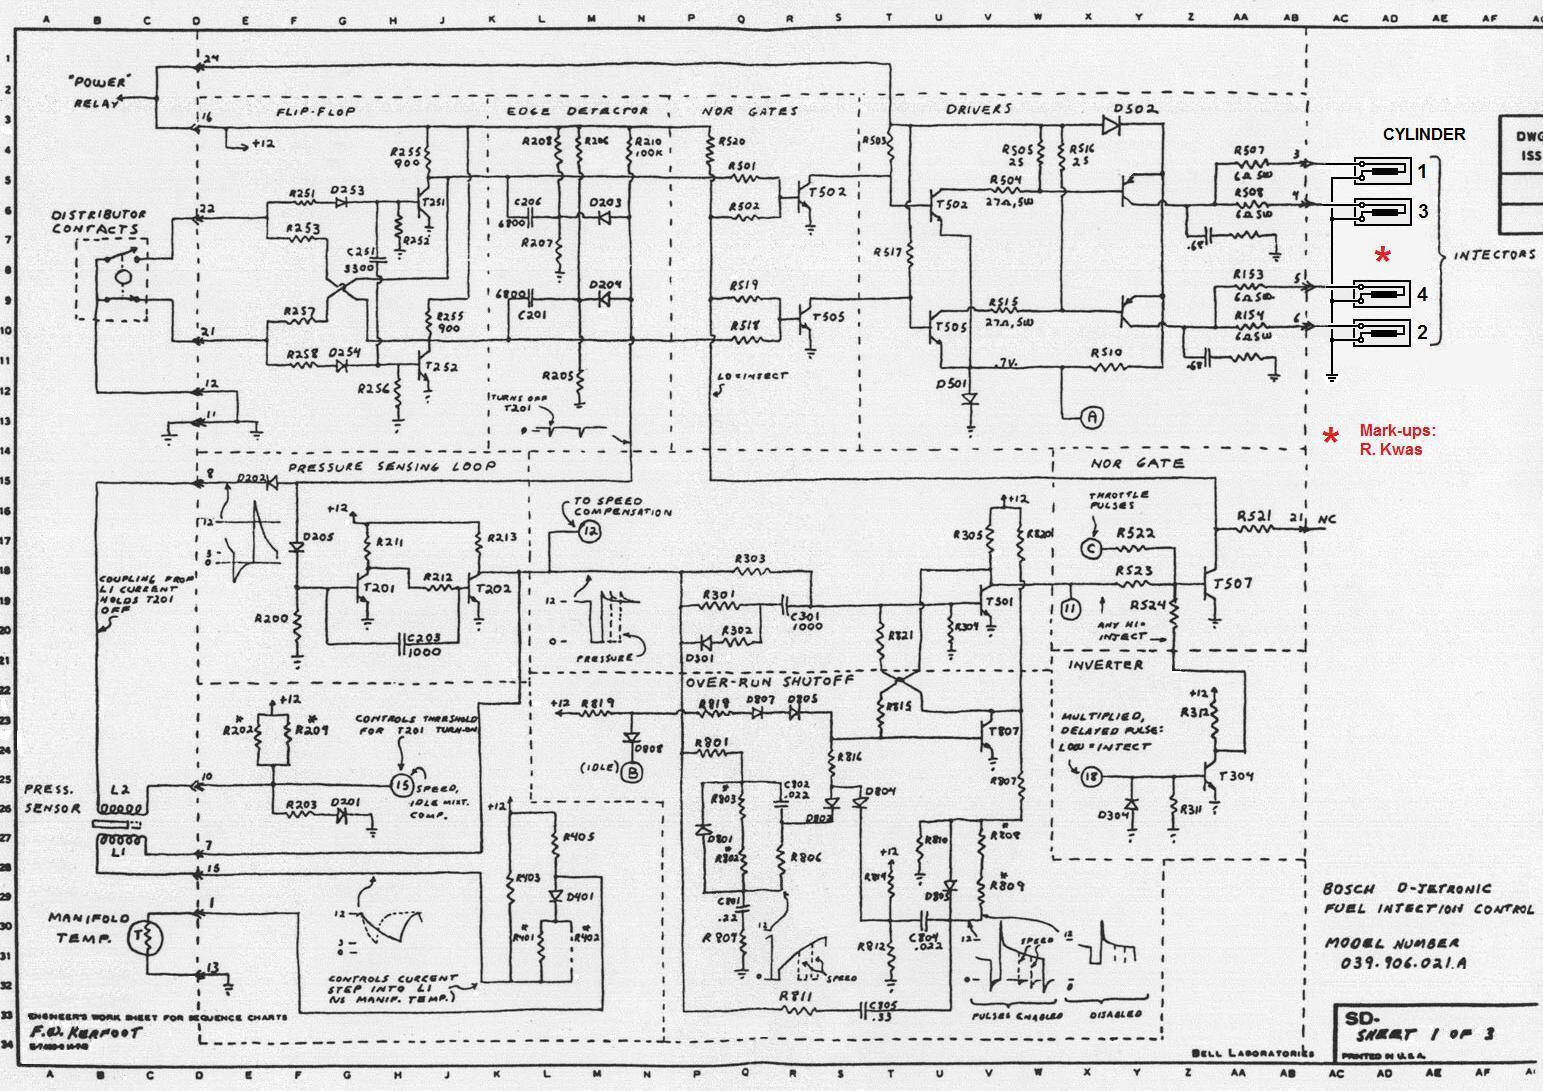 hight resolution of sheet 1 timing logic tl pressure sensing loop pl over run shutoff os injection logic il switching logic sl and output drivers d1 d2